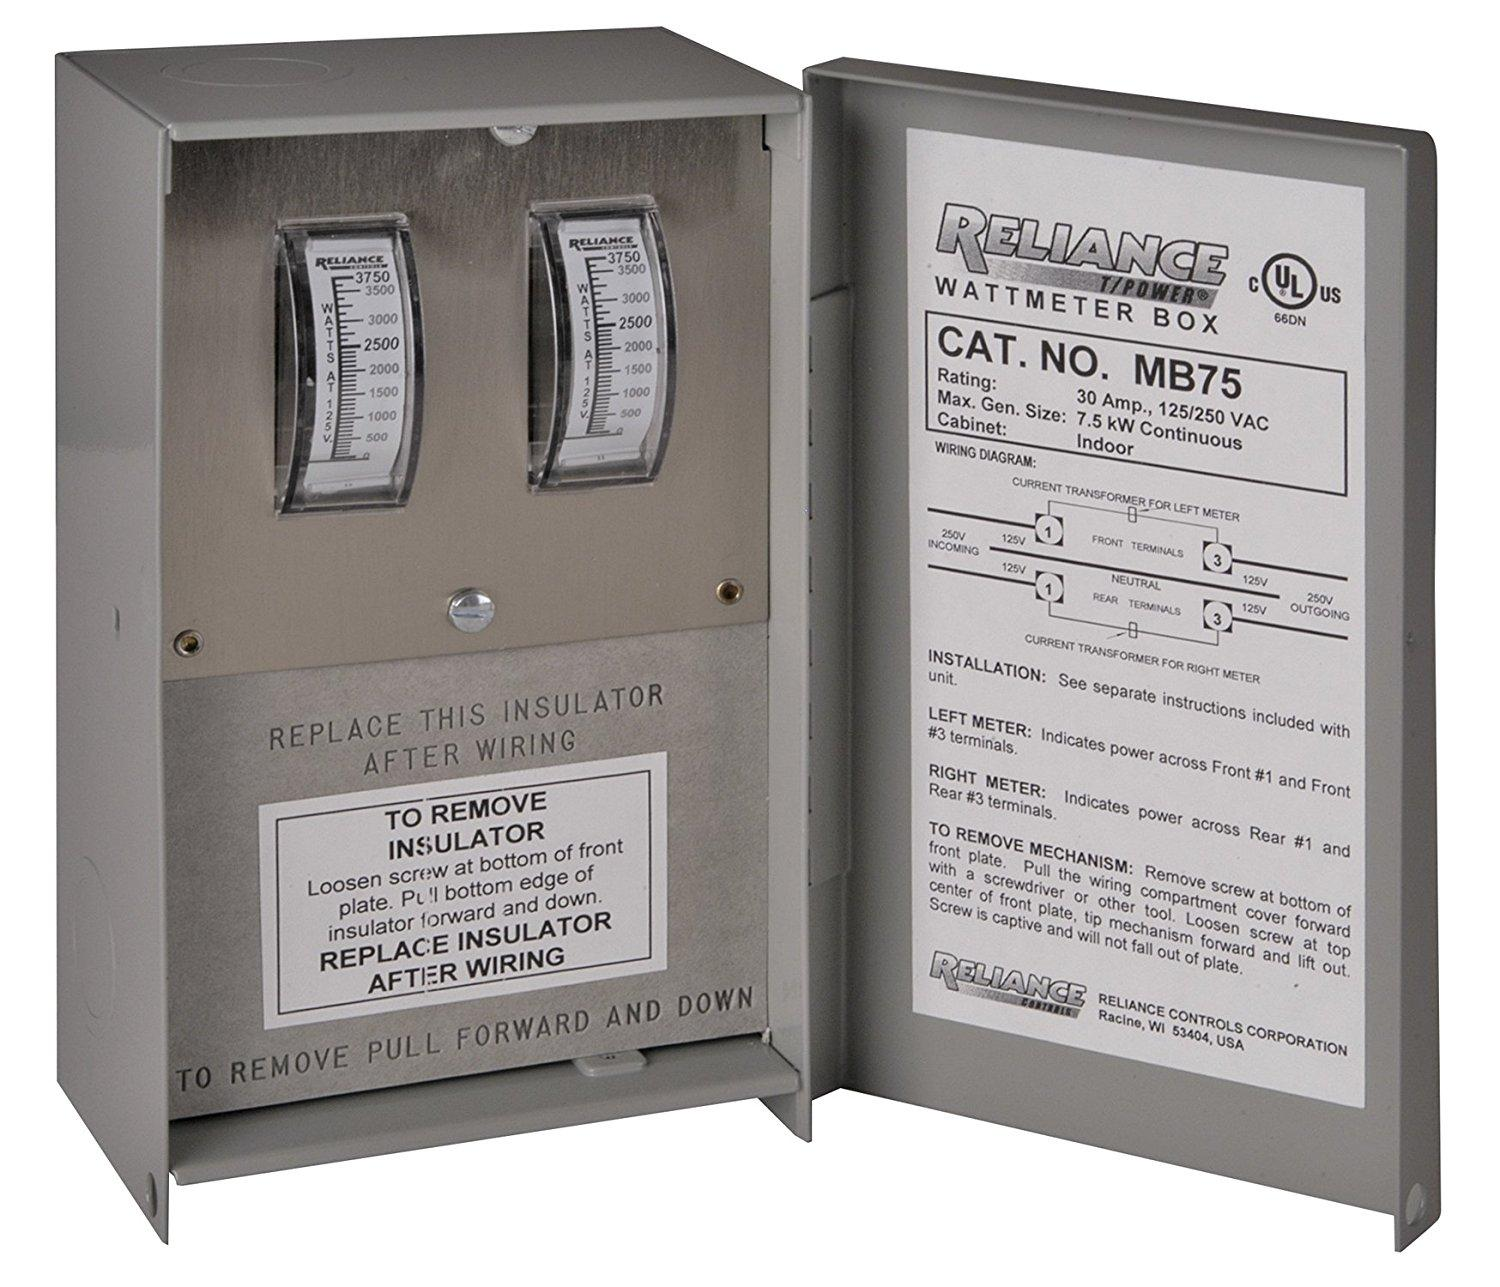 Reliance Controls Corporation Mb75 Watt Meter Box For Thread Ra28 Ammeter Wiring Help View Larger